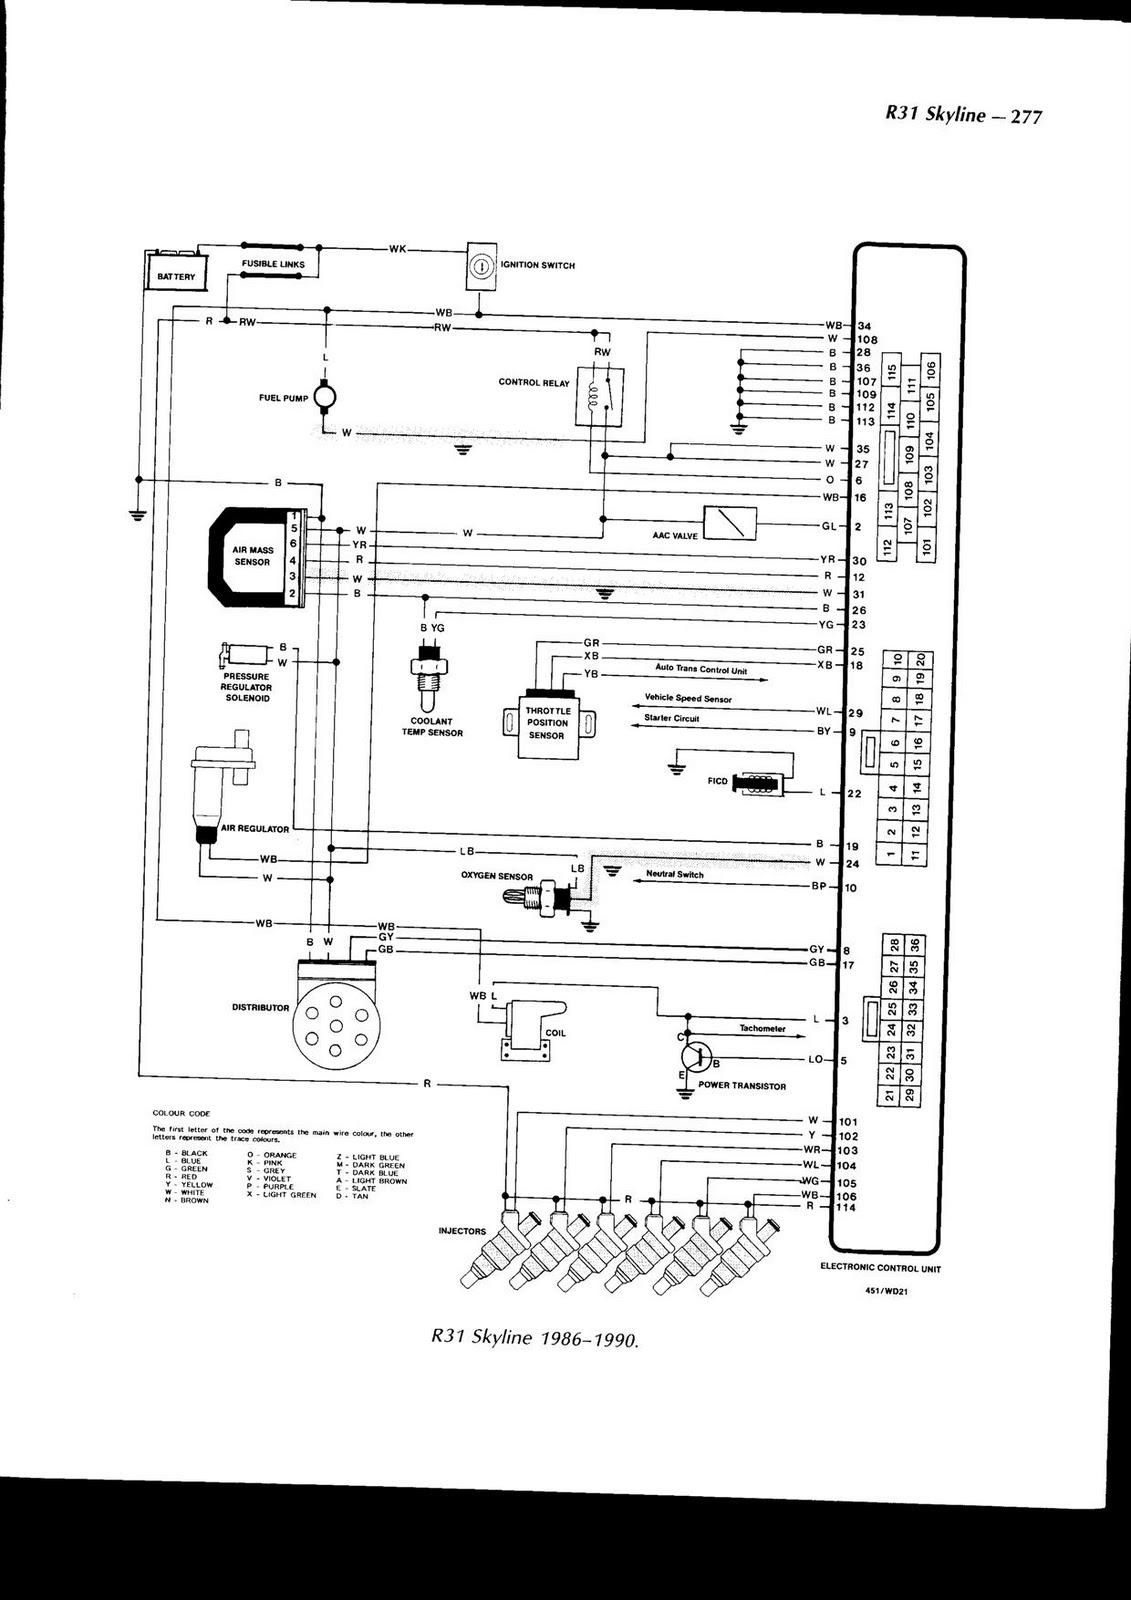 Apexi Neo Wiring Skyline Schematics Diagrams R32 Ecu Diagram Rb20det 26 Images Safc Civic